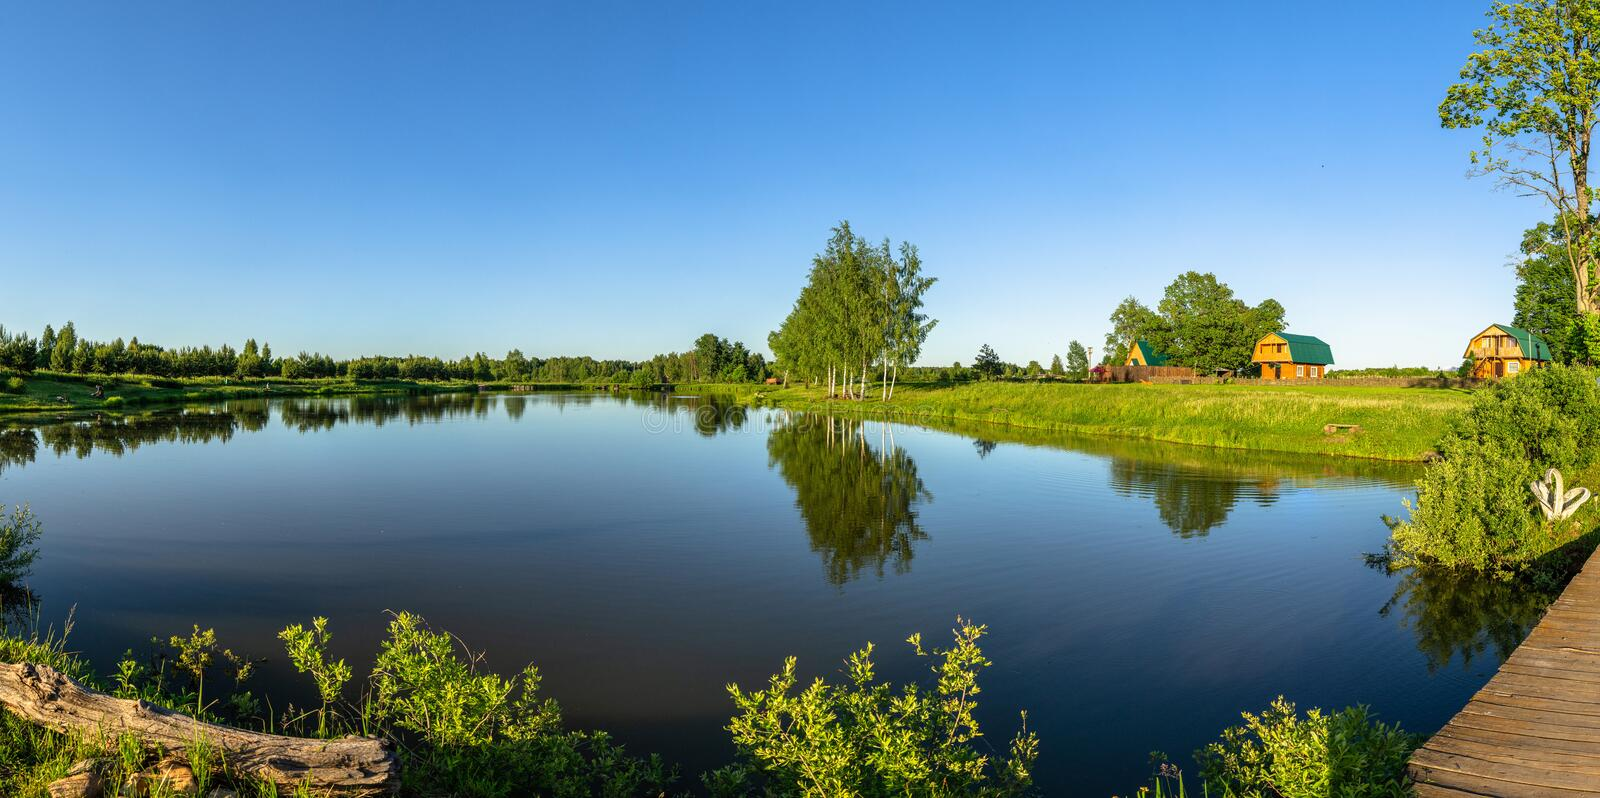 Landscape with a pond at sunset in Central Russia. The landscape at sunset is rich in colors. Illuminated by Golden sunlight, fields, meadows, trees, hills and royalty free stock photos